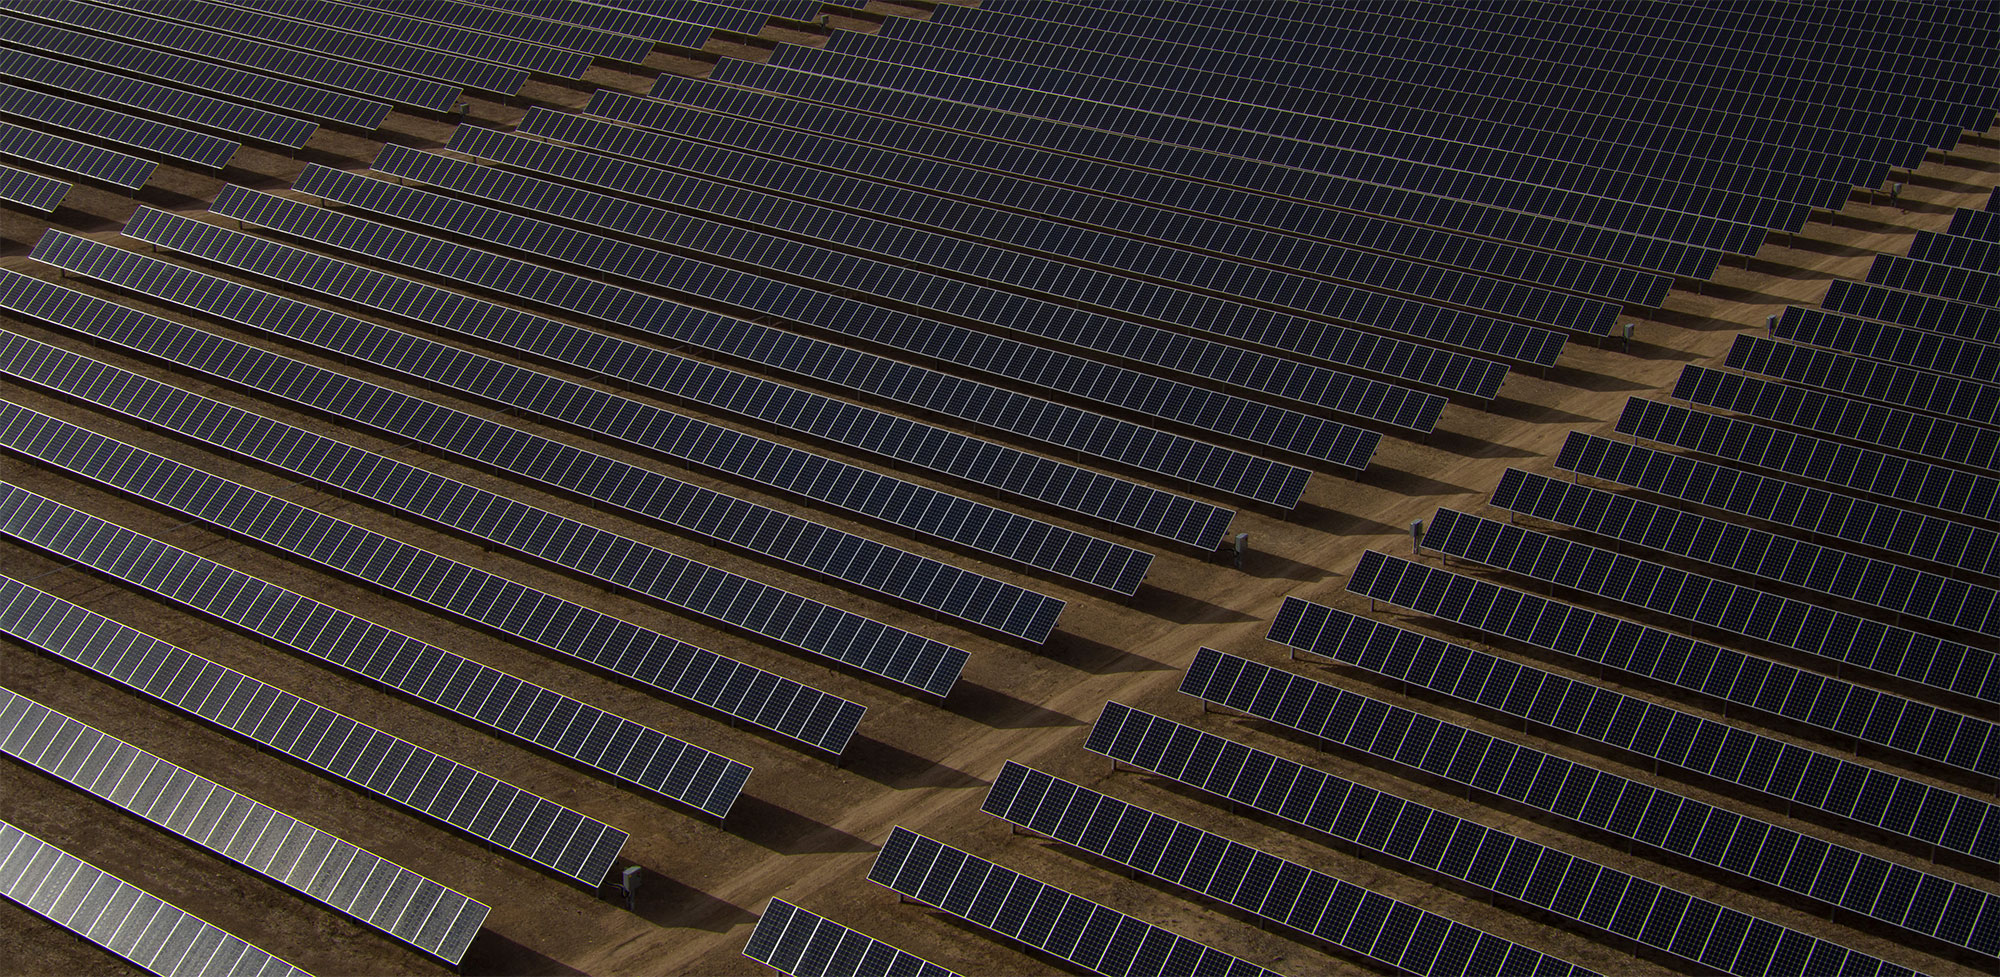 Solar power in the United States